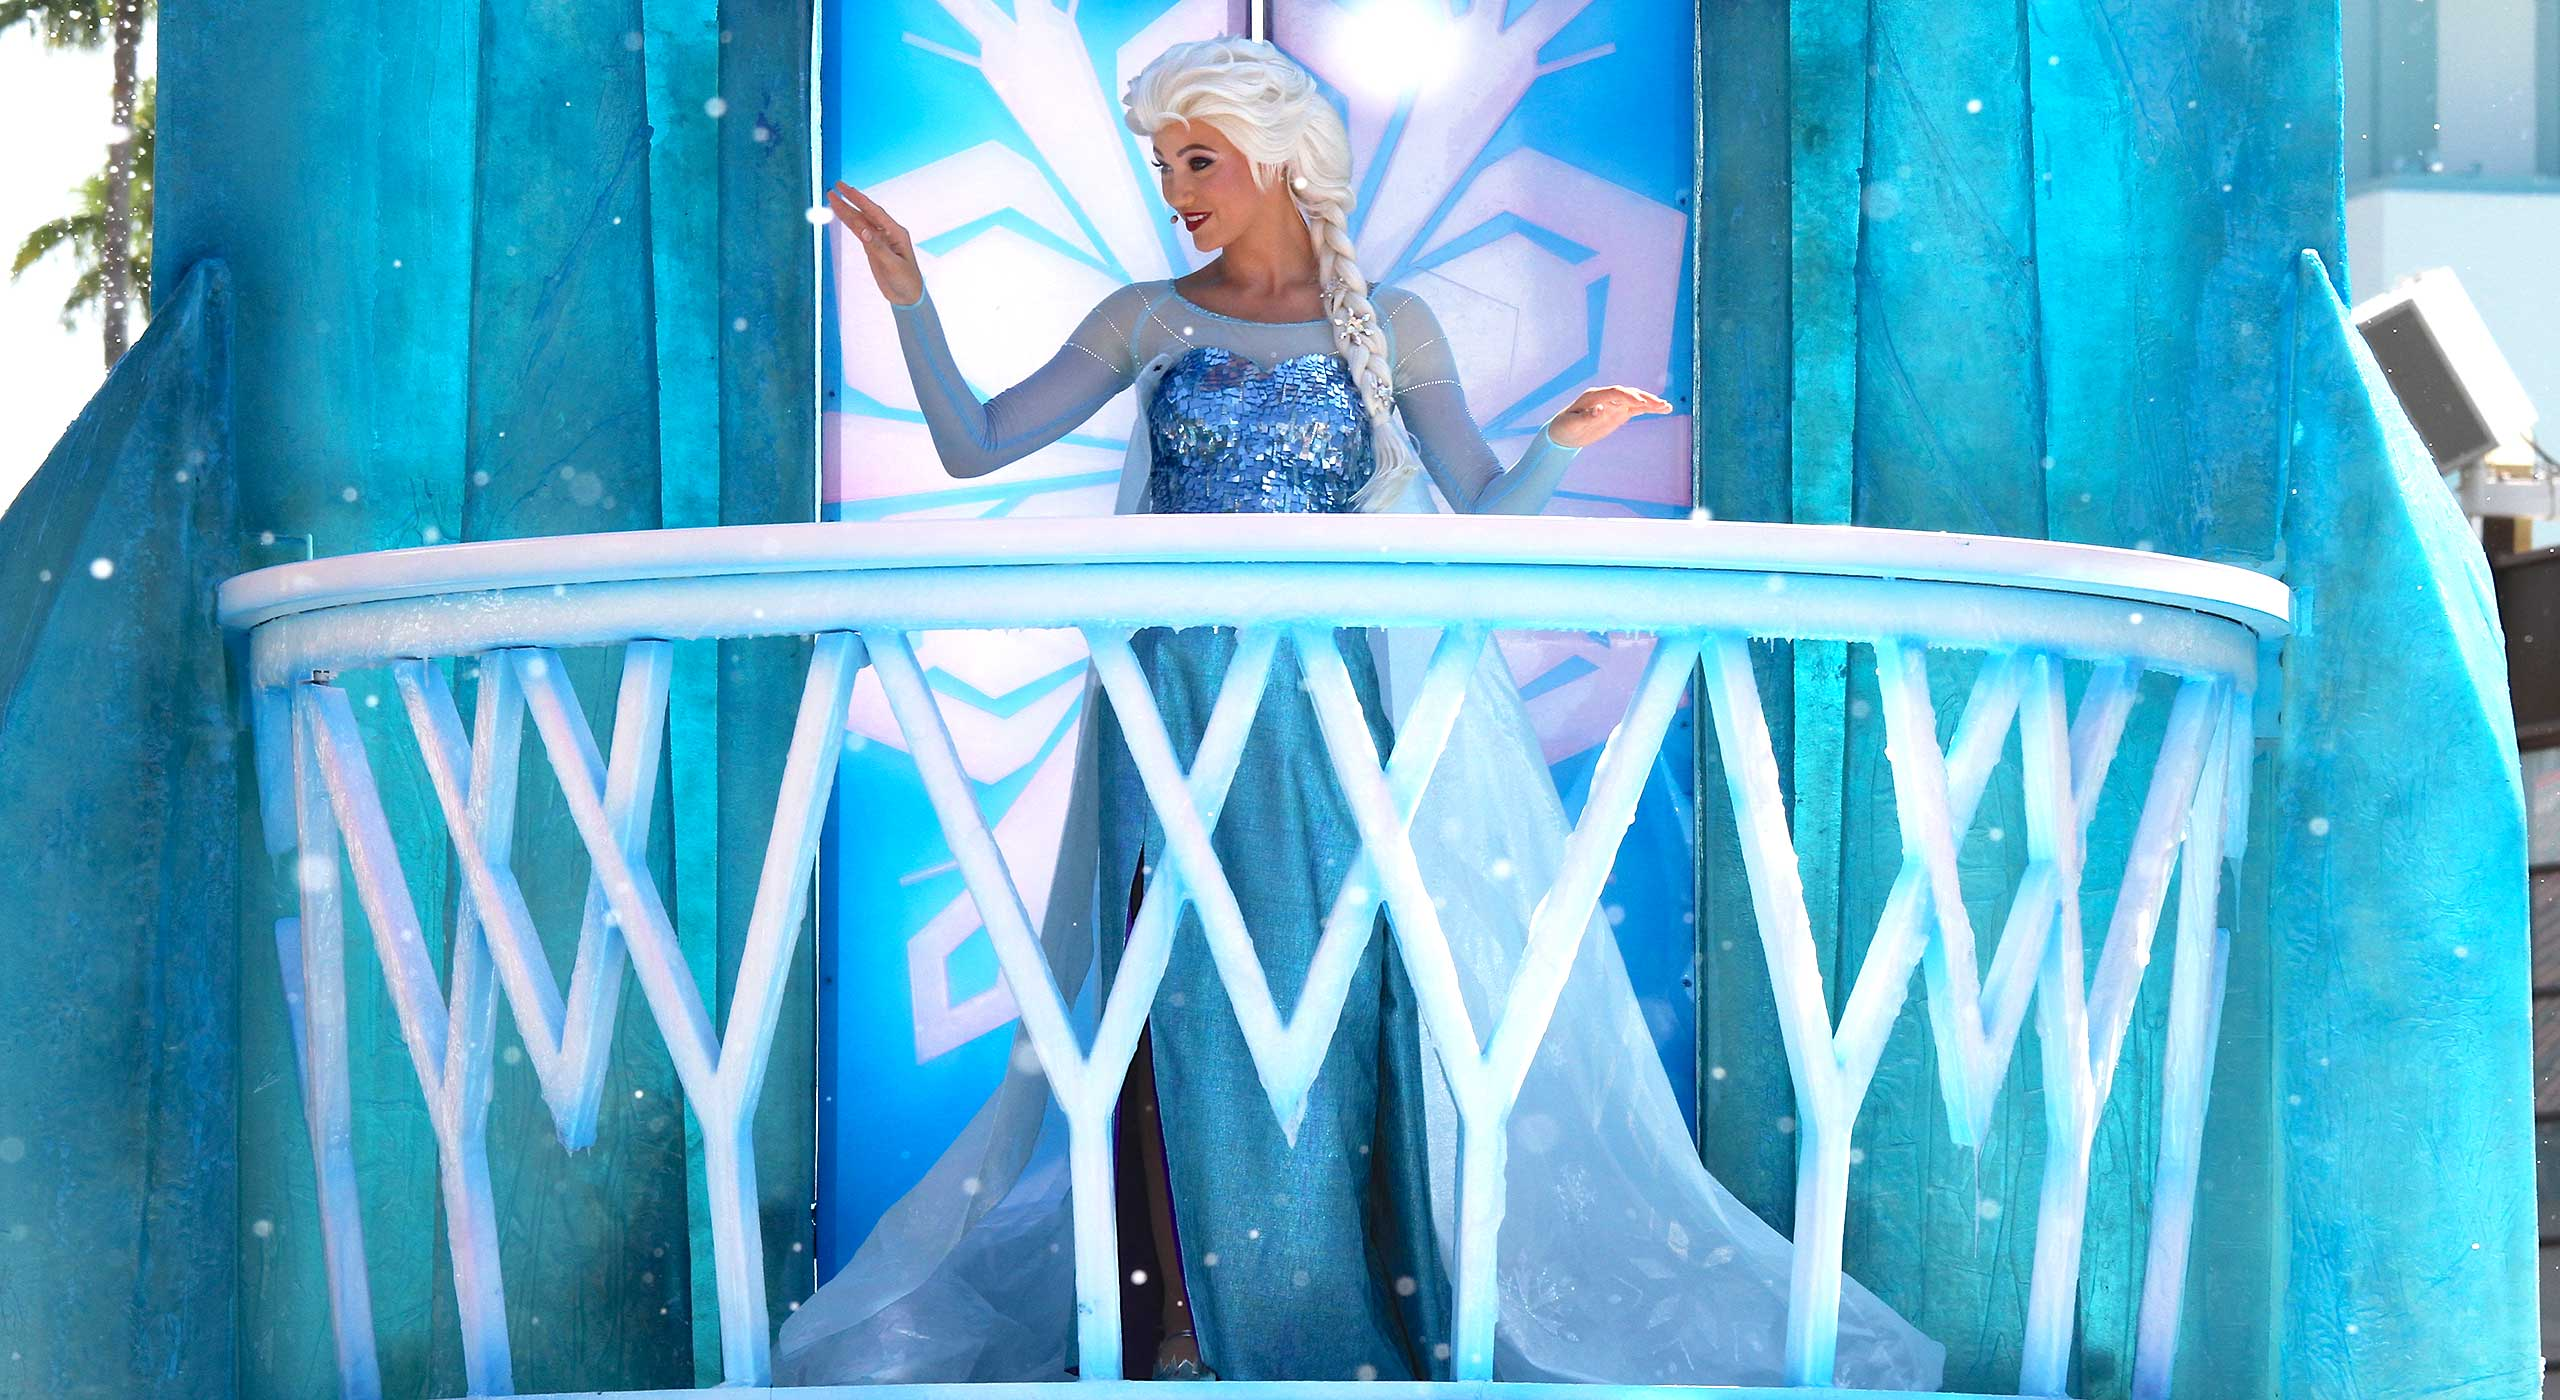 Queen Elsa in the Royal Welcome at Disney's Hollywood Studios